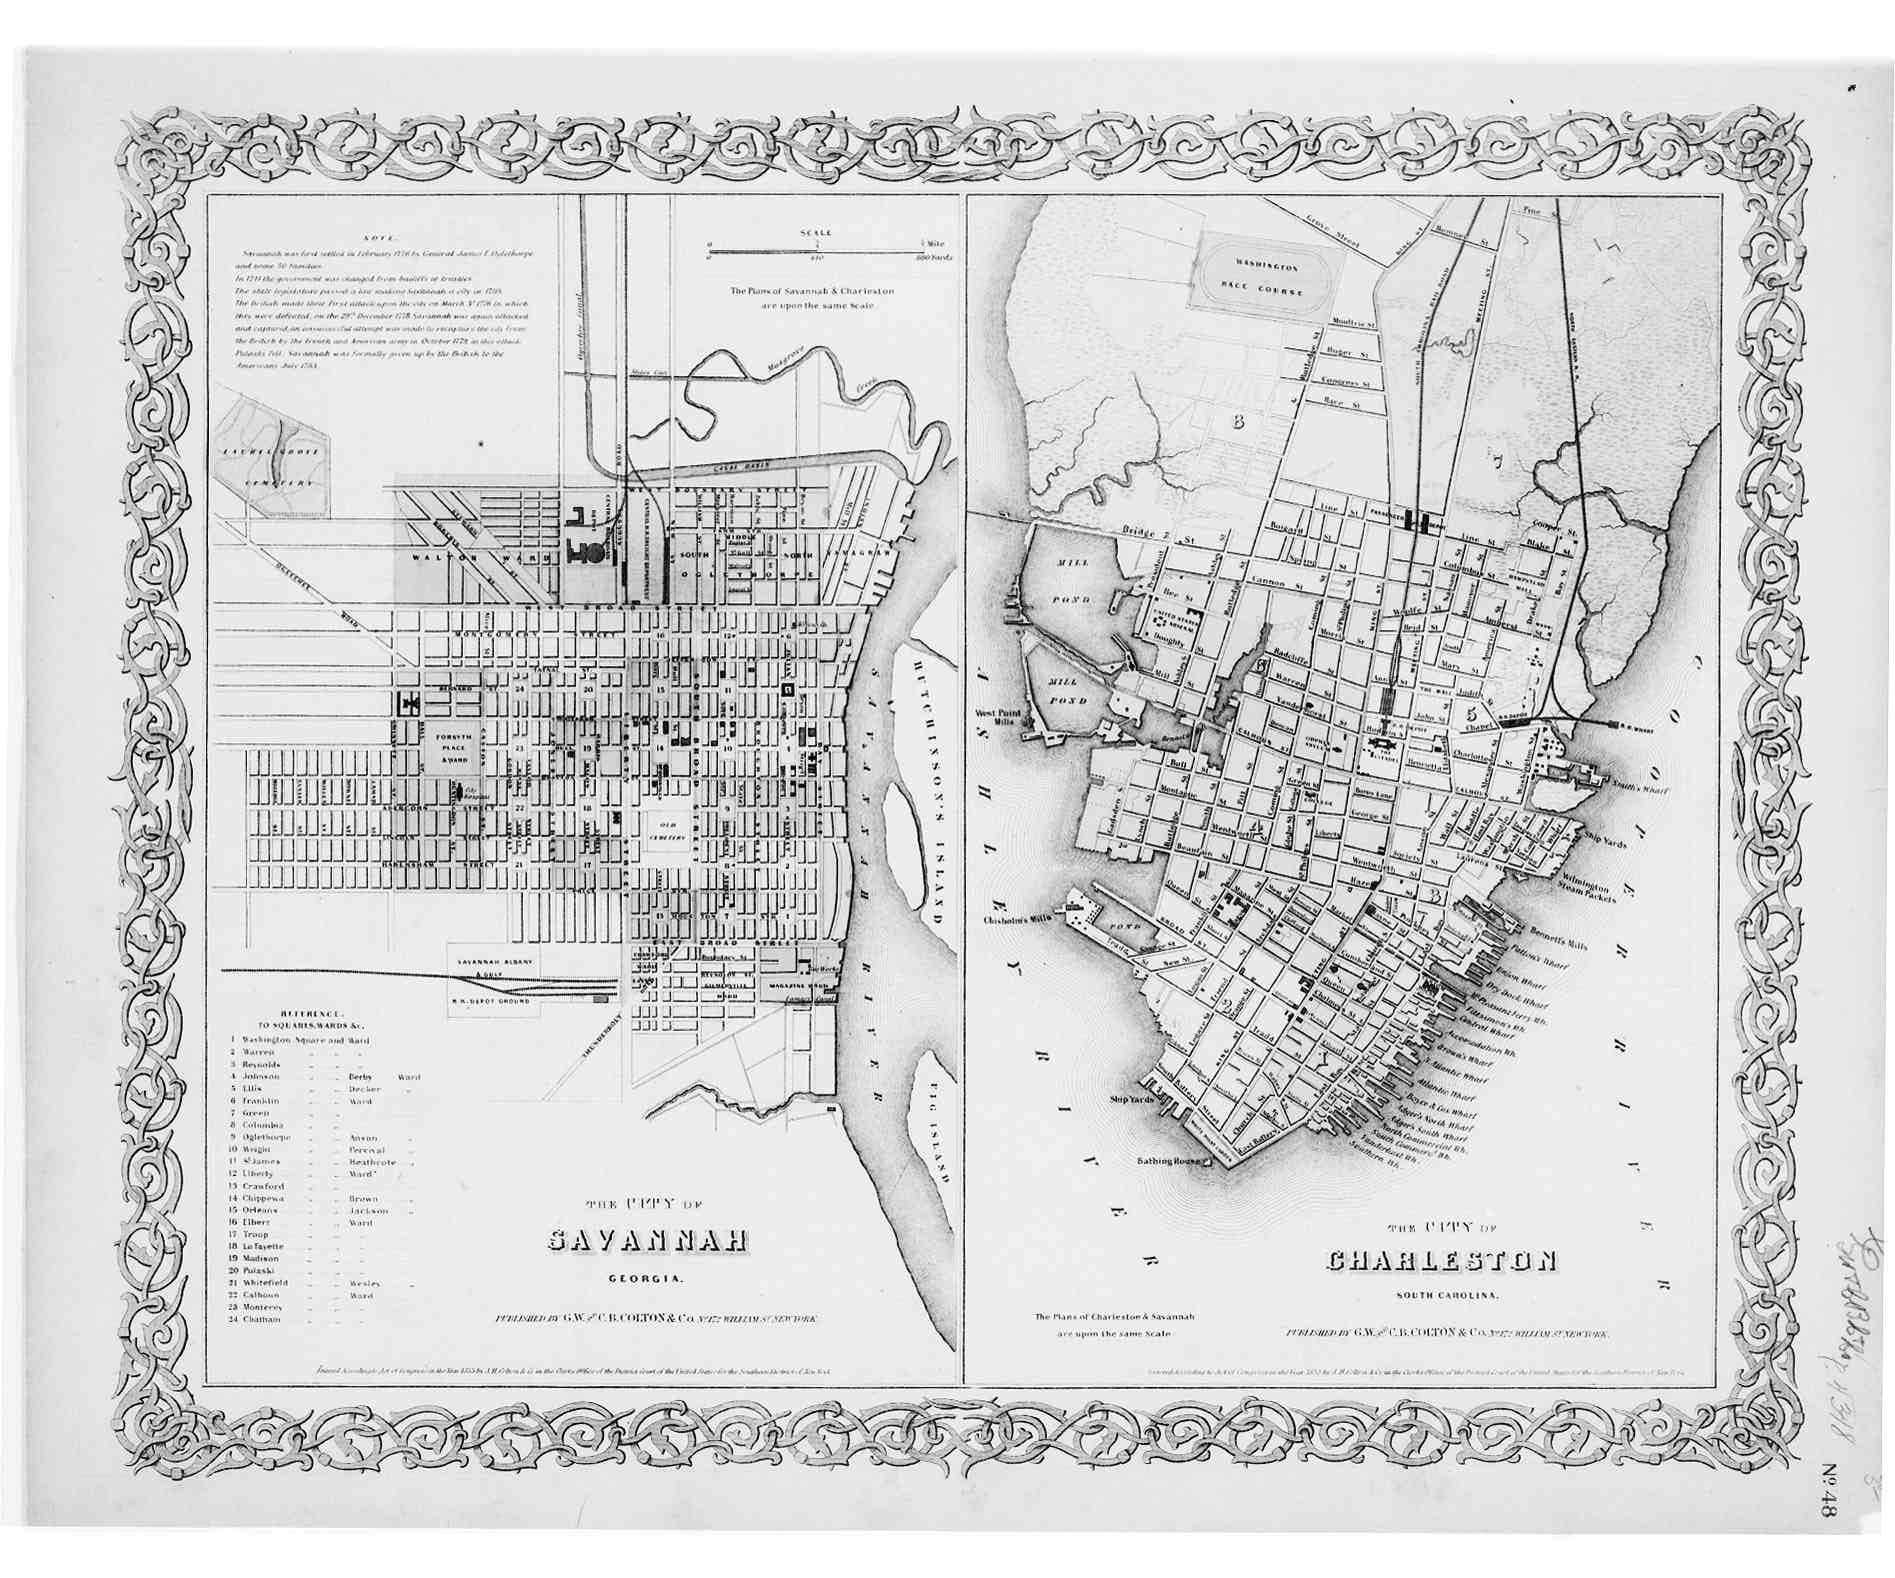 Map 1855 S3 The City Of Savannah Georgia And Charleston South Carolina